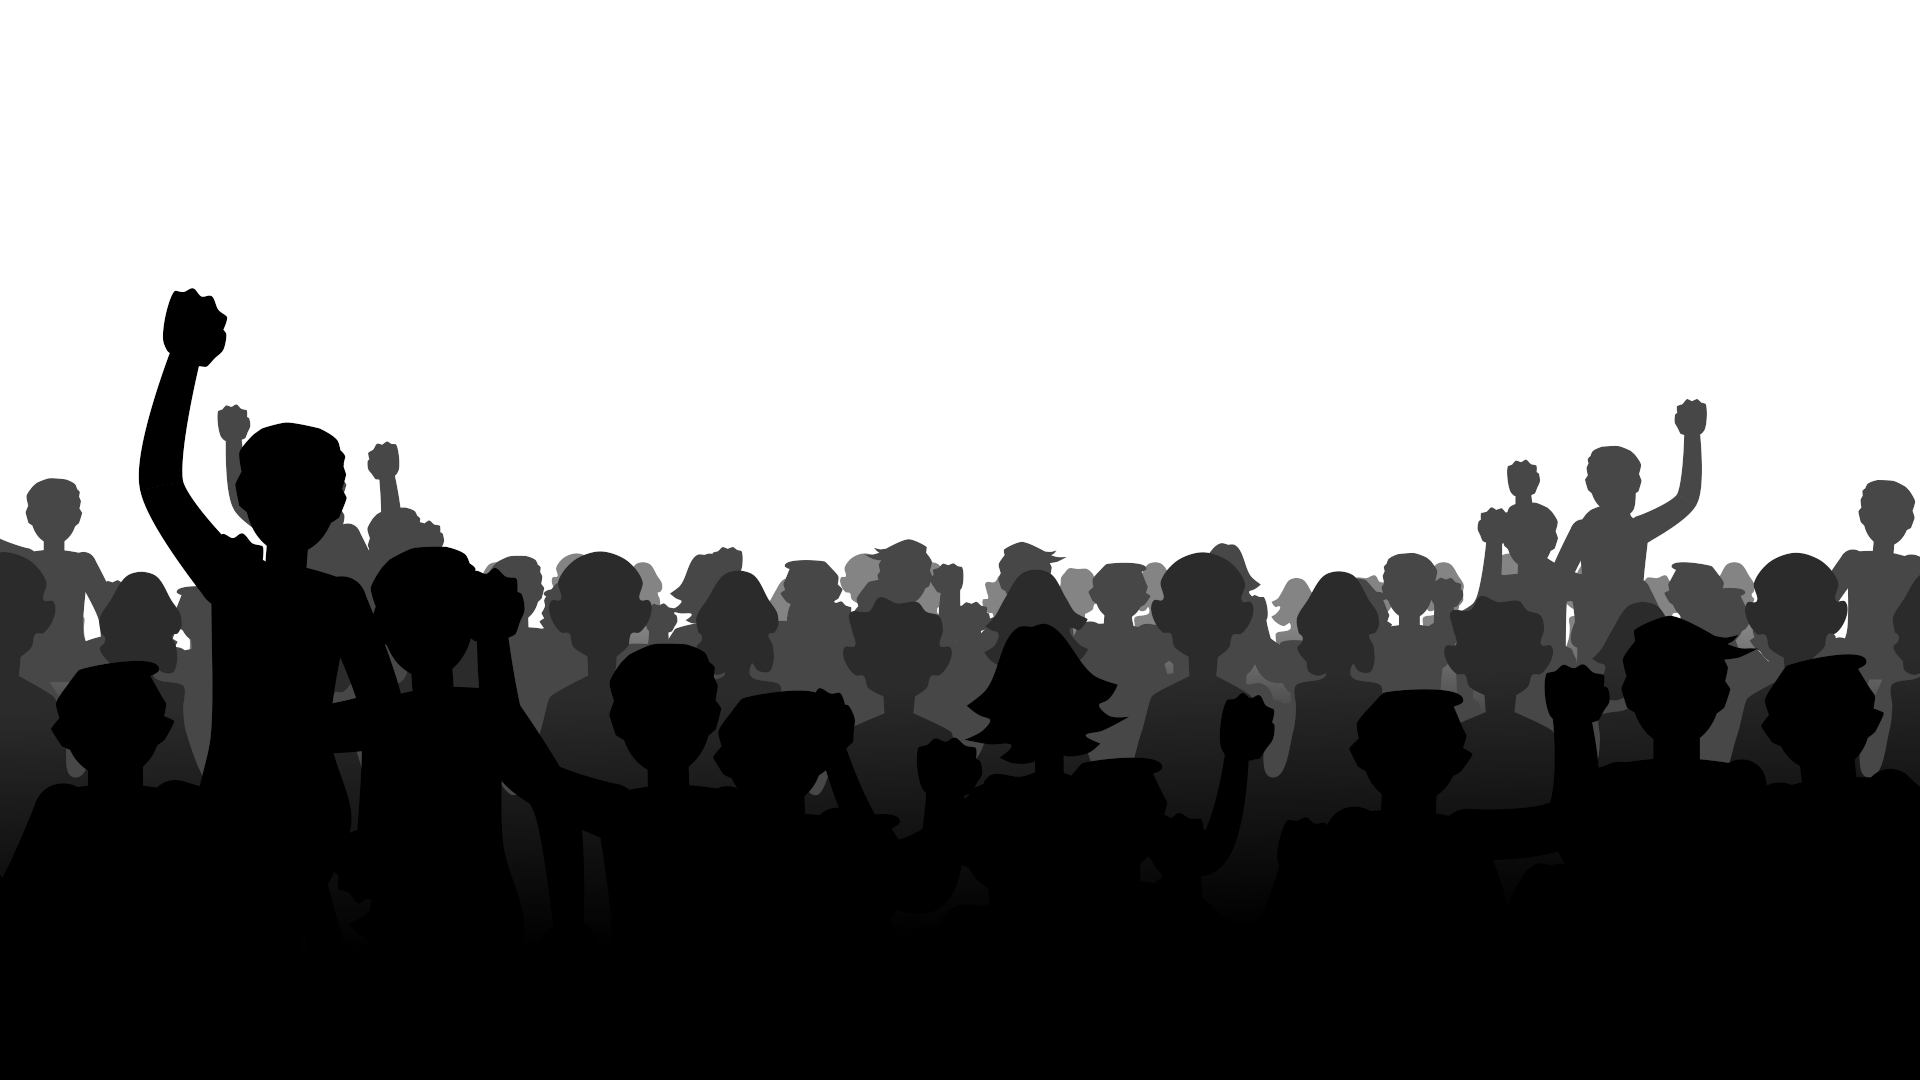 Crowdsilhouette Png 1920 1080 Concert Crowd Silhouette Png Concert